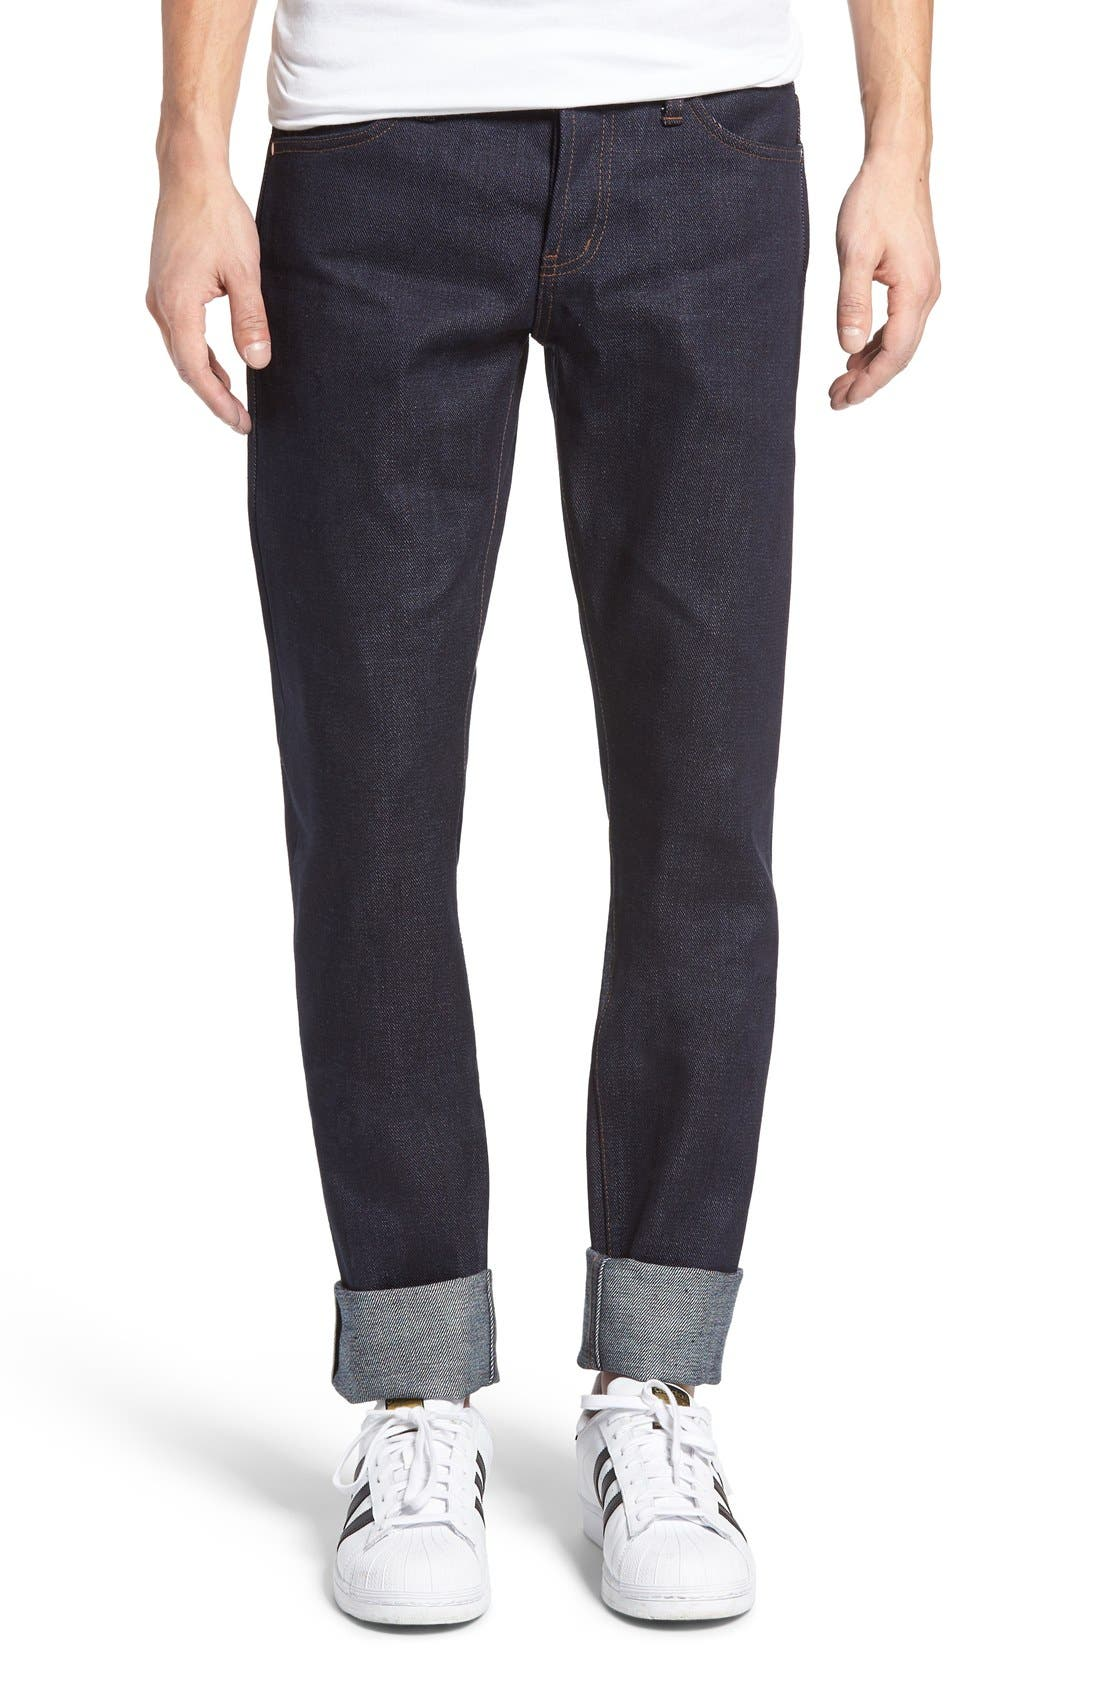 Alternate Image 1 Selected - The Unbranded Brand UB121 Selvedge Skinny Fit Jeans